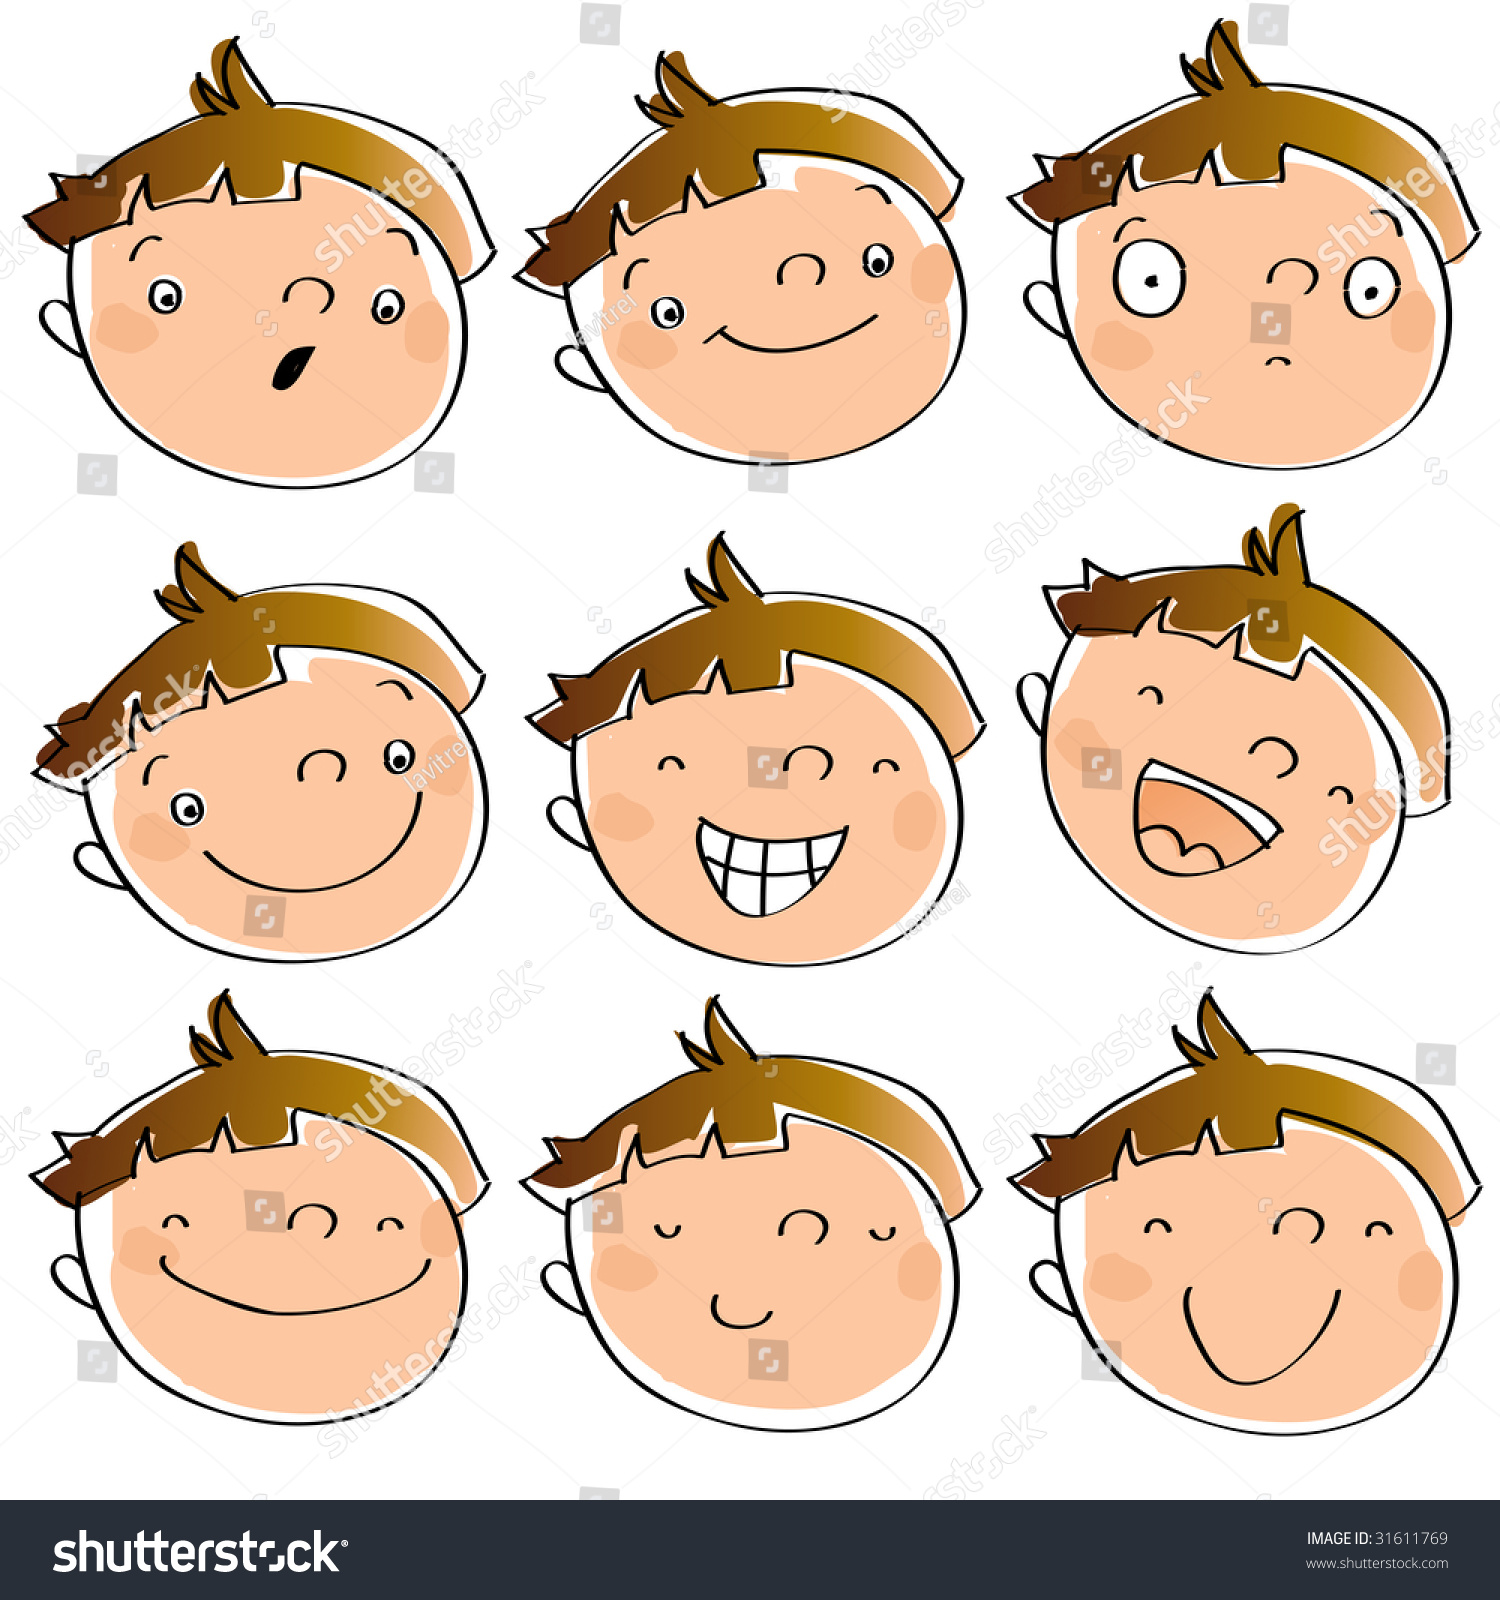 Line Drawings Of Facial Expressions : Funny cartoon kids faces having different stock vector